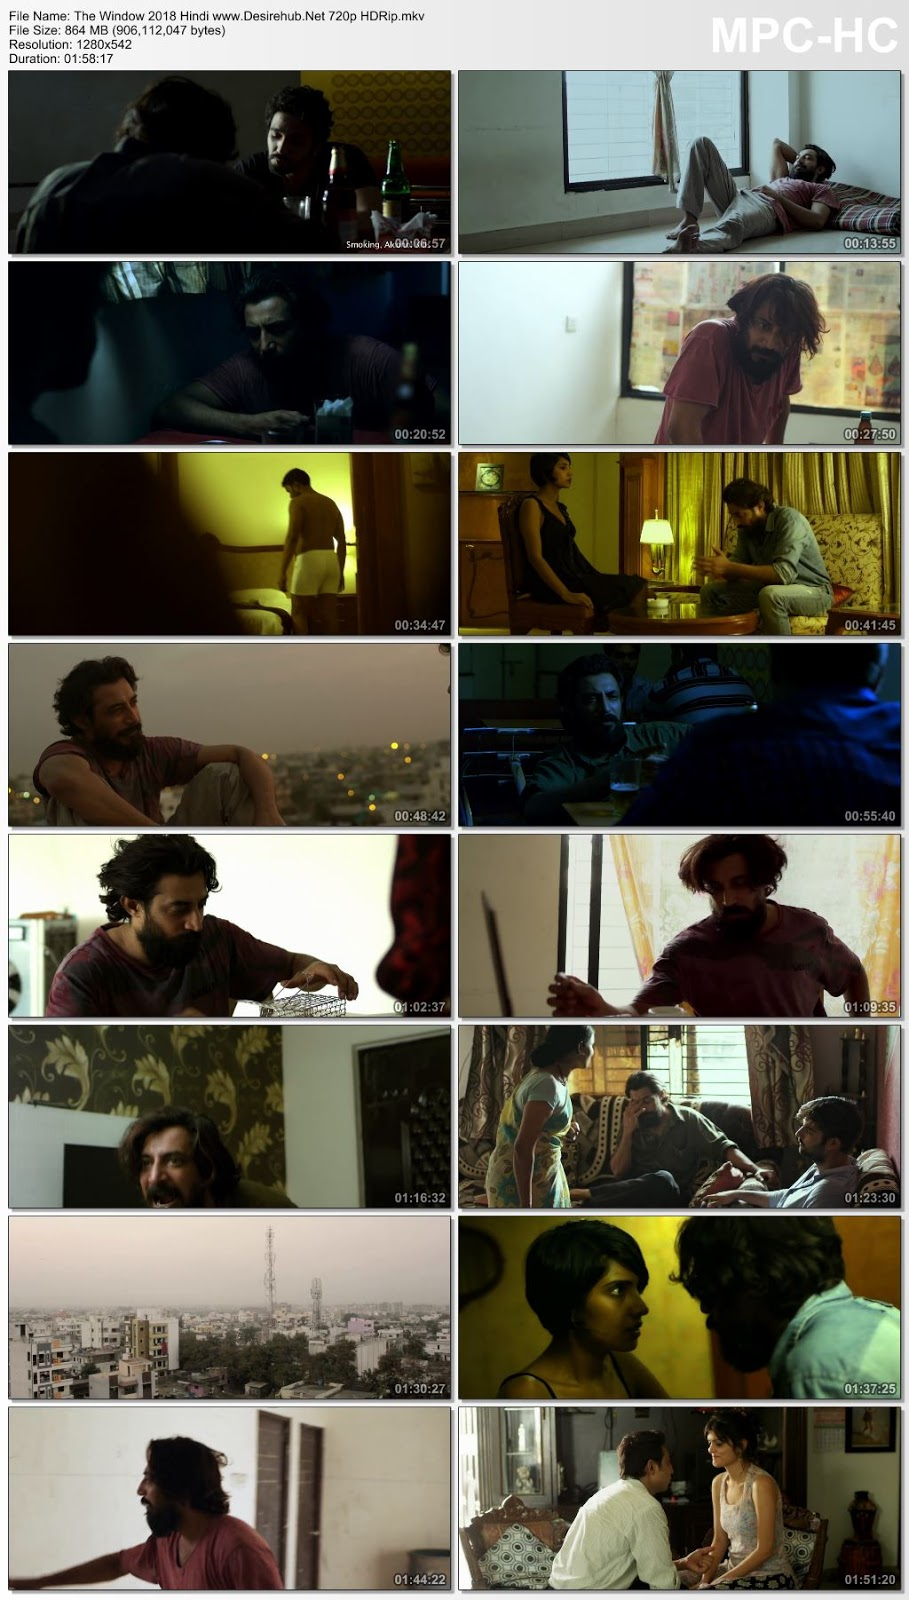 The Window 2018 Hindi 480p HDRip 350MB Desirehub